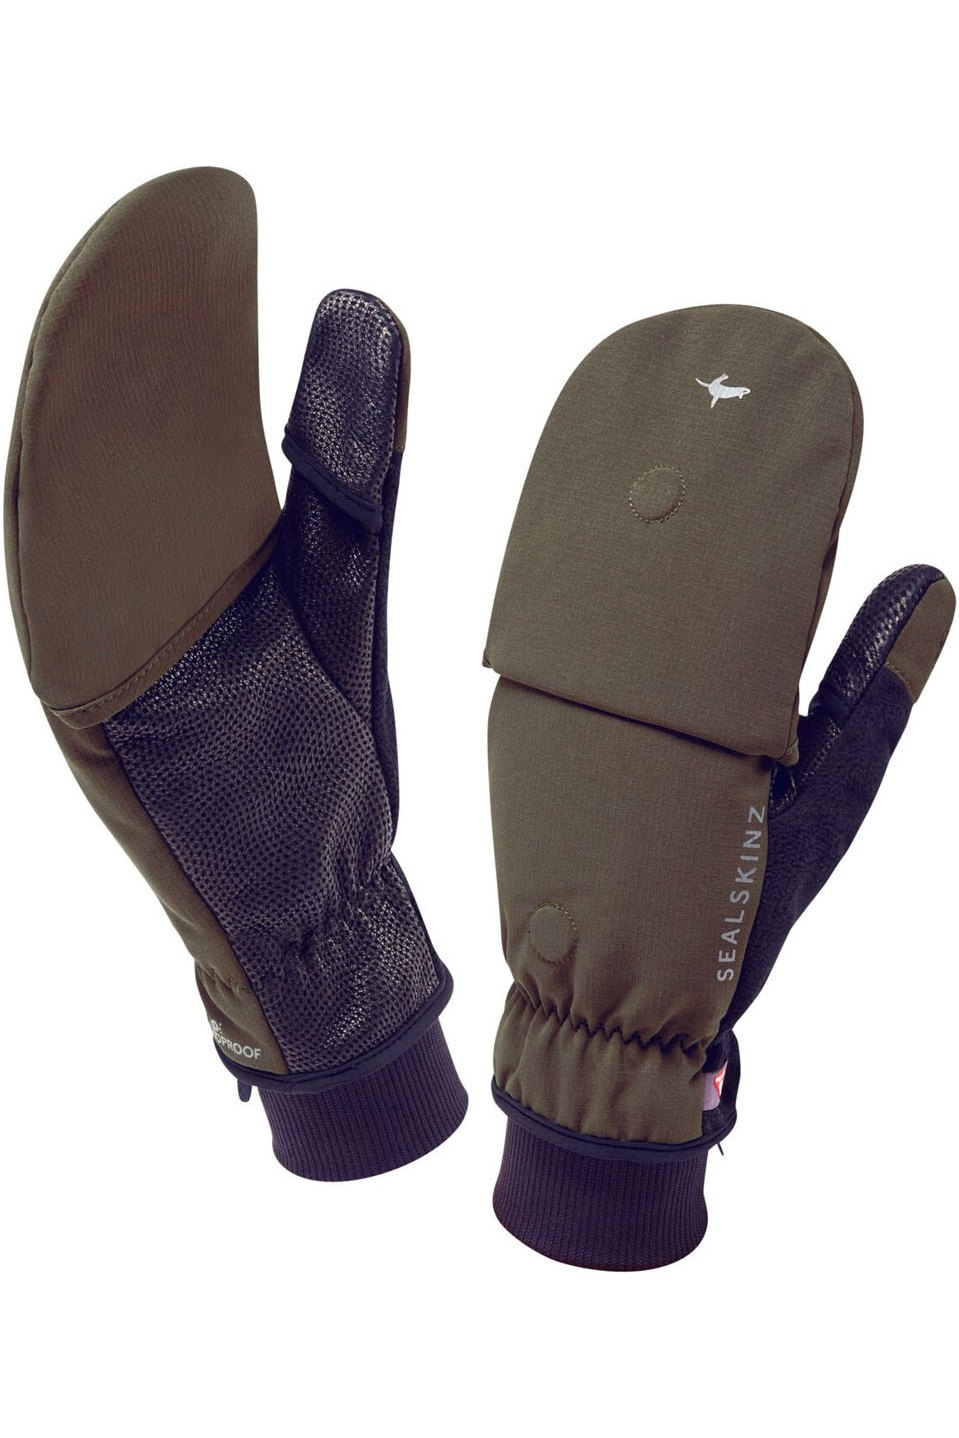 Sealskinz Outdoor Sports Mittens Olive The Drillshed